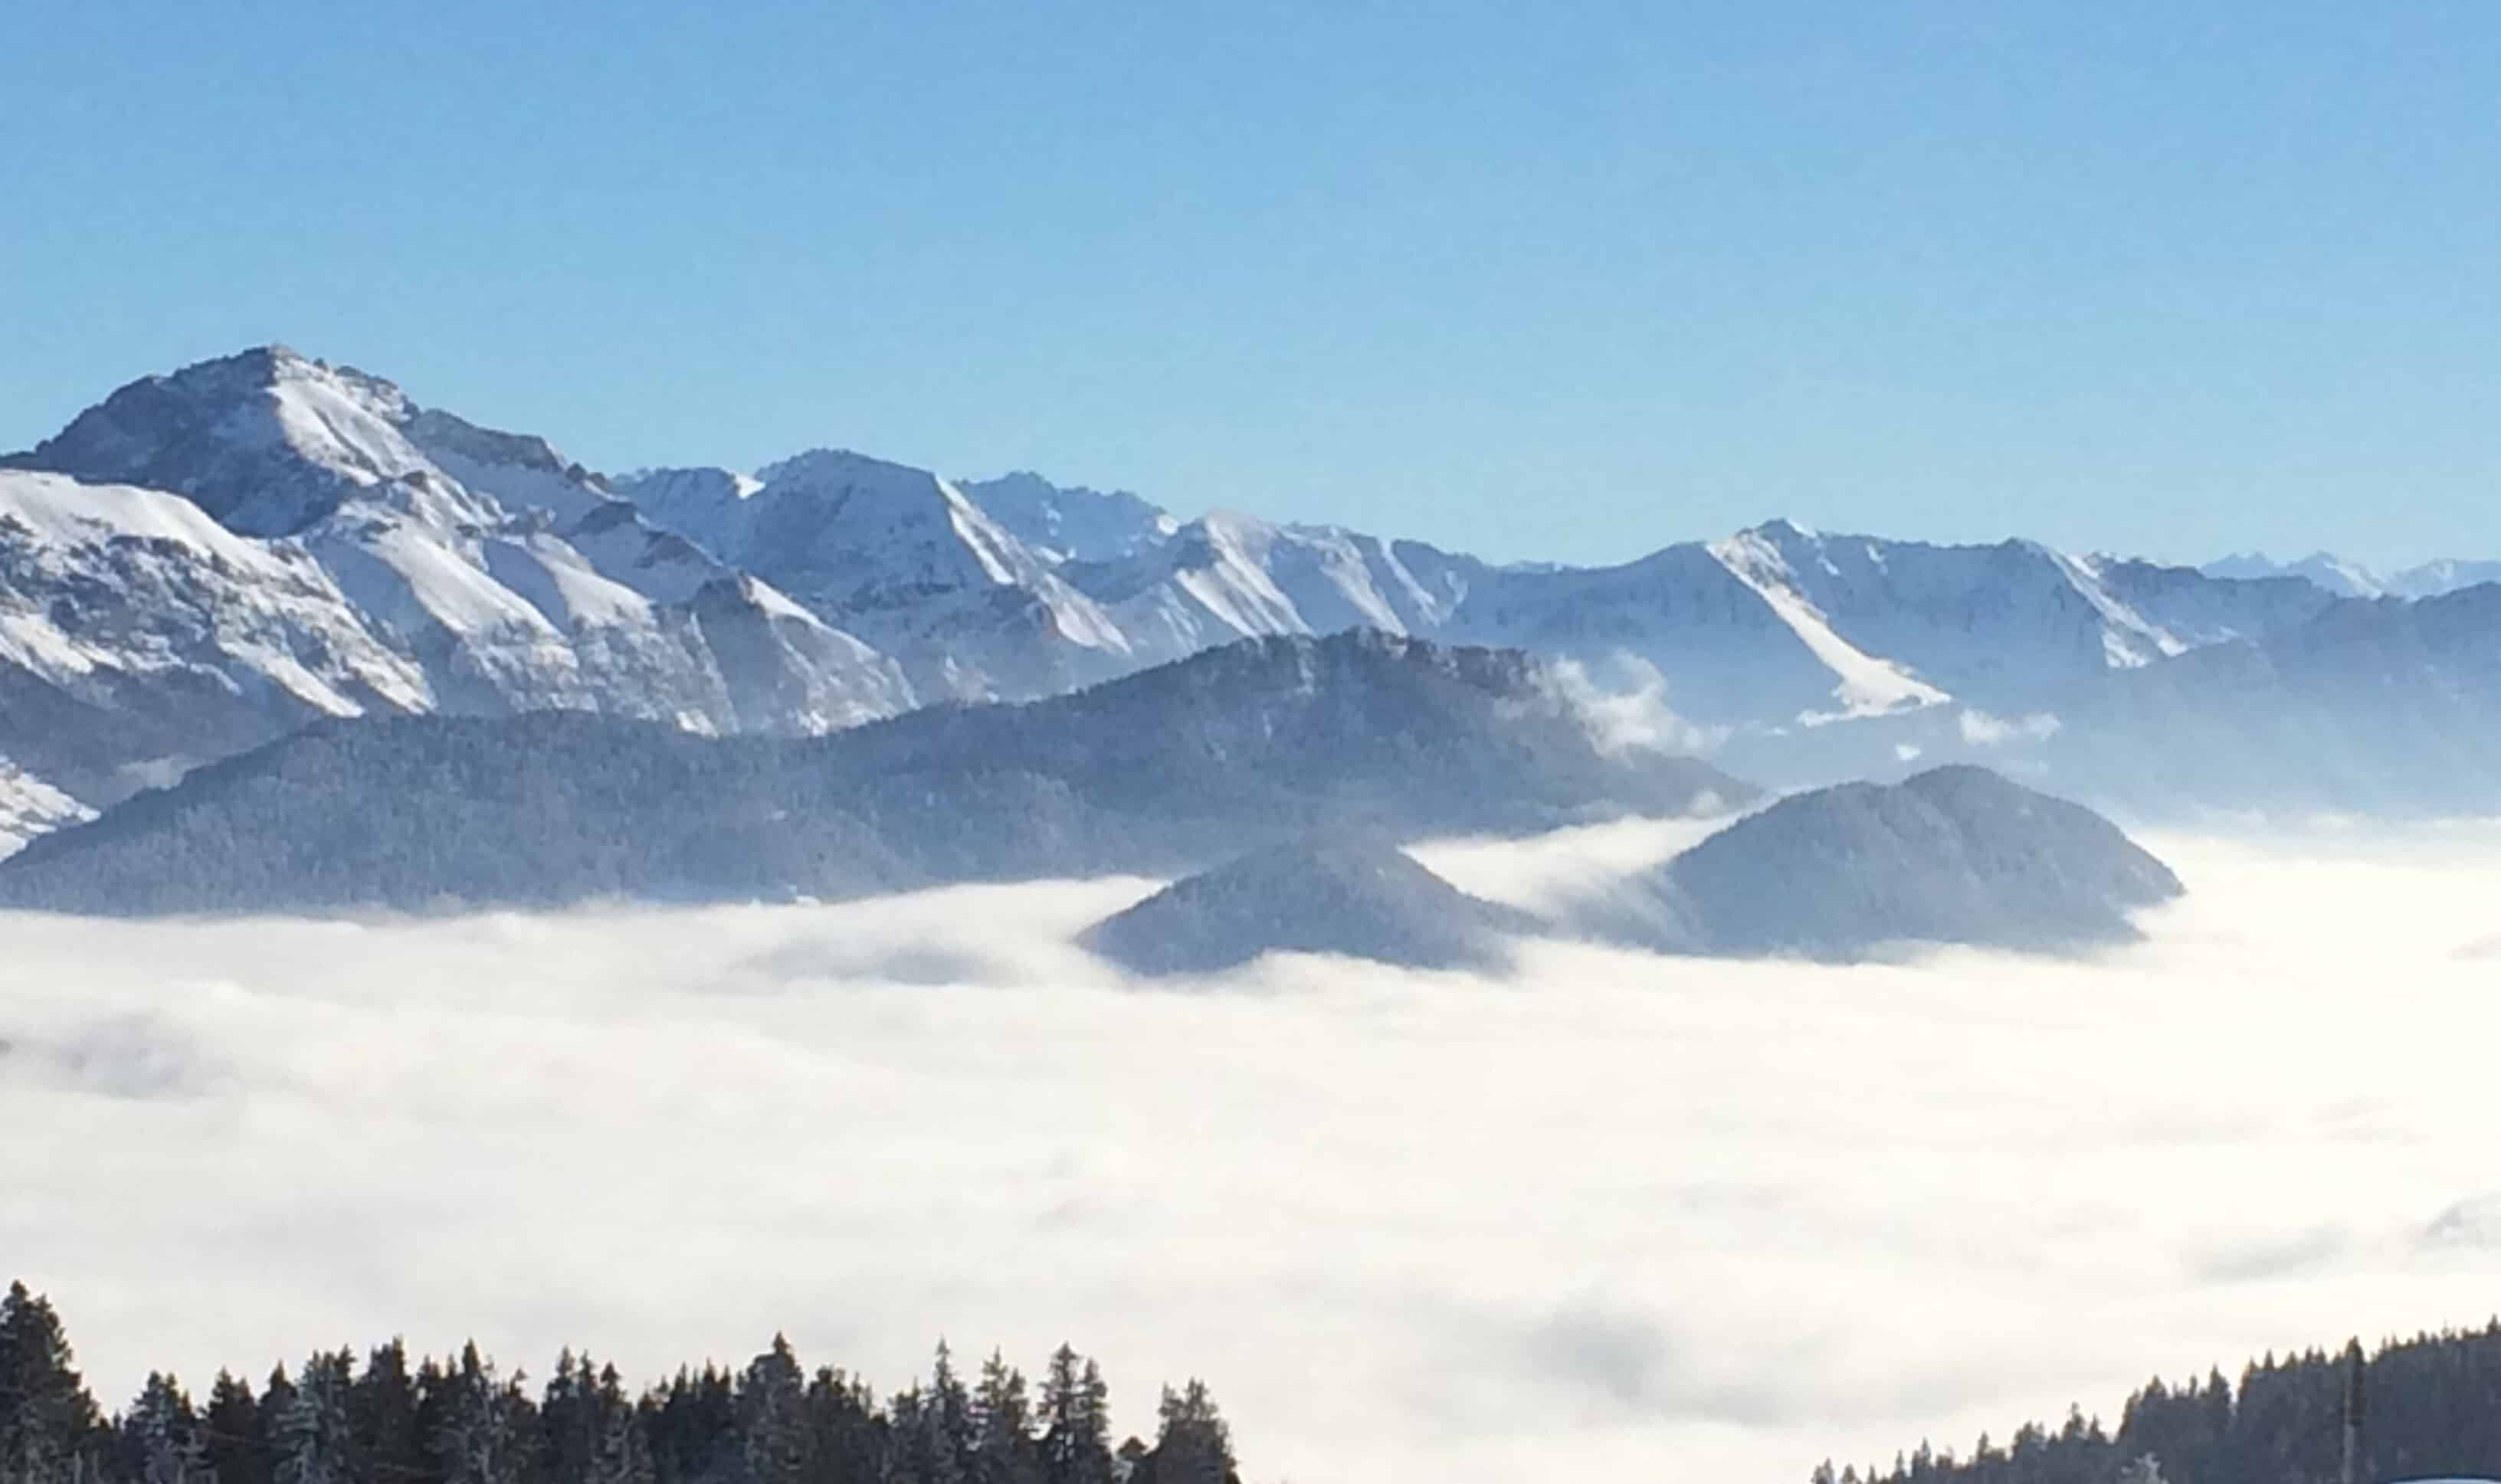 View of French Alps from Semnoz